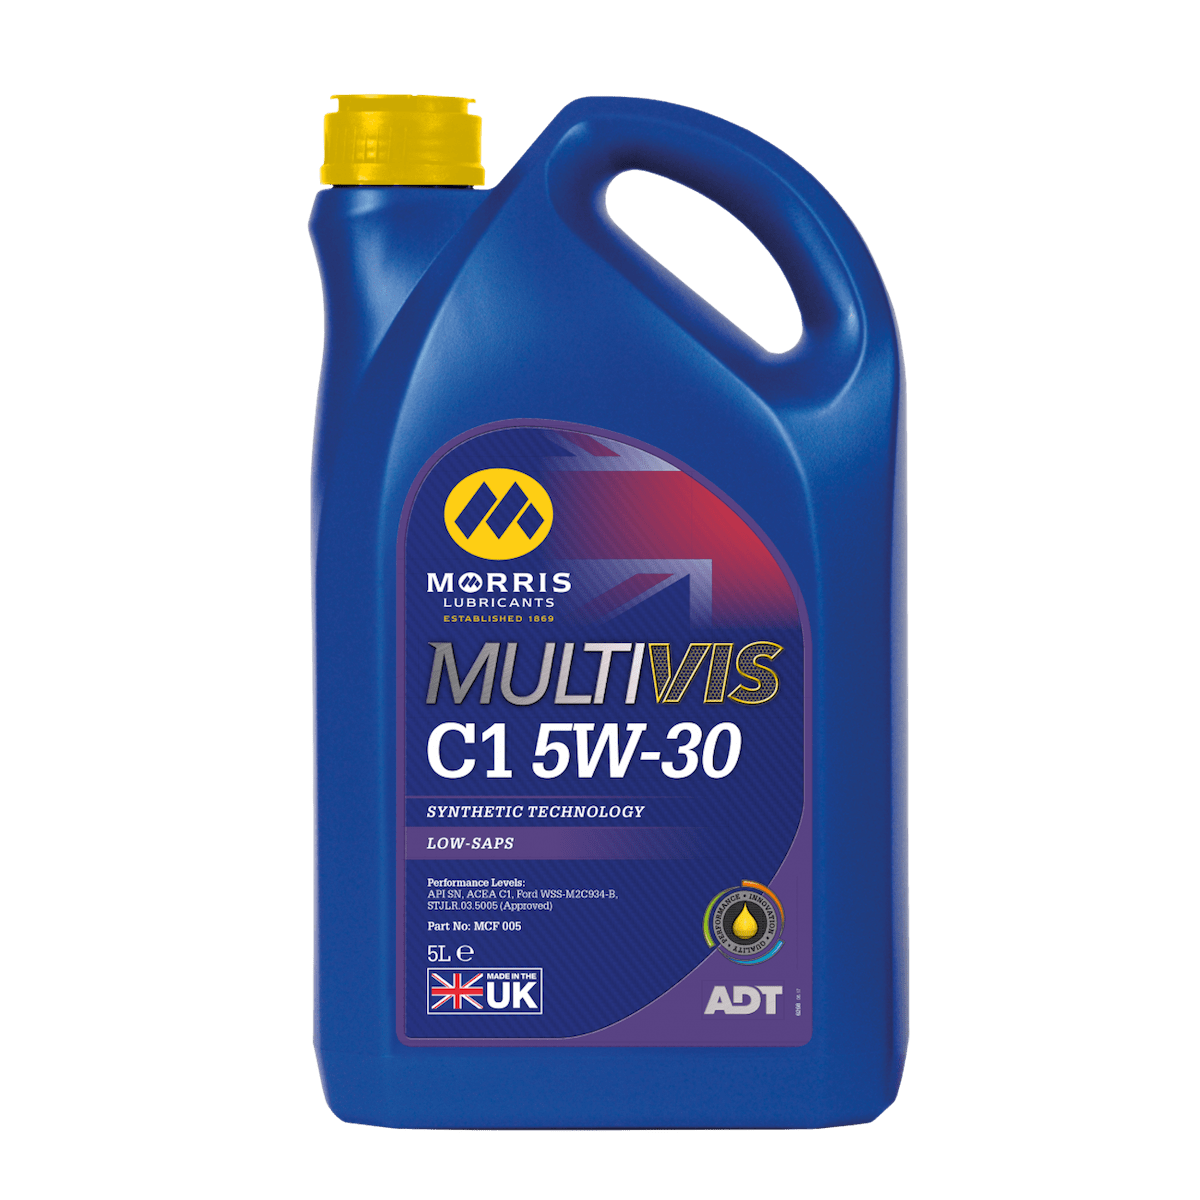 Multivis ADT C1 5W-30 (Previously Multilife C-ONE 5W-30)